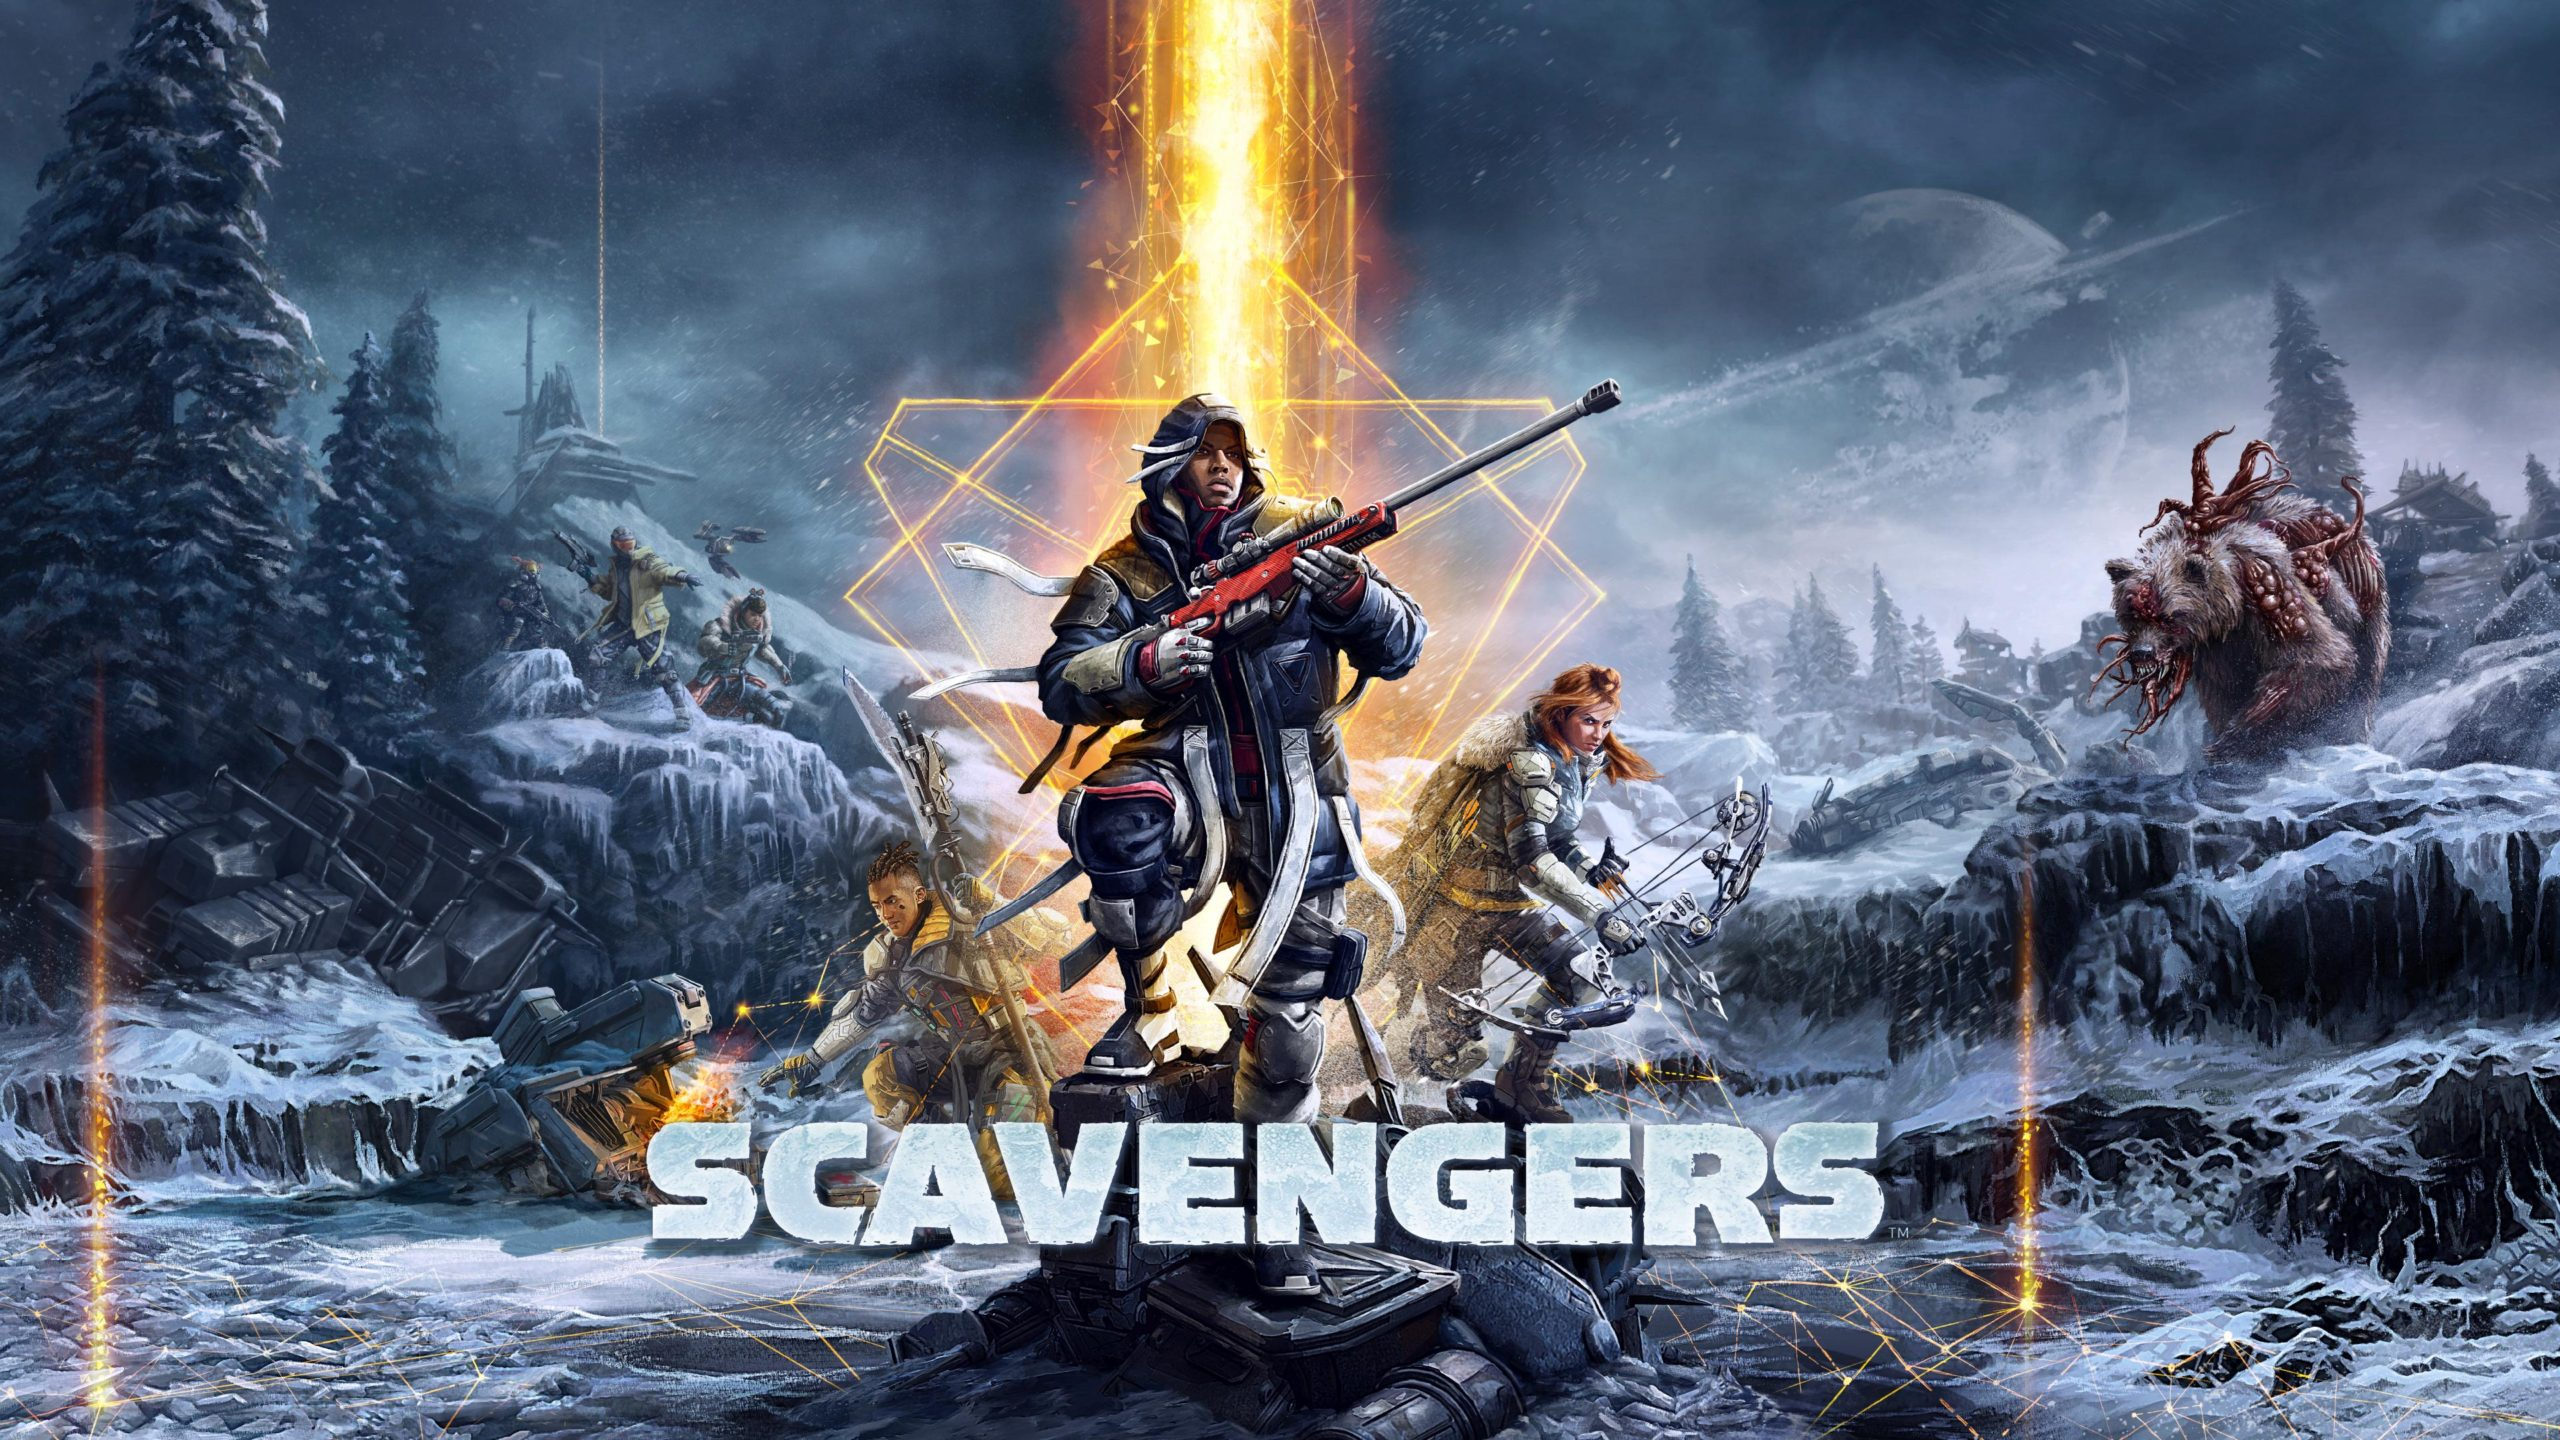 Scavengers PC Game Wallpaper